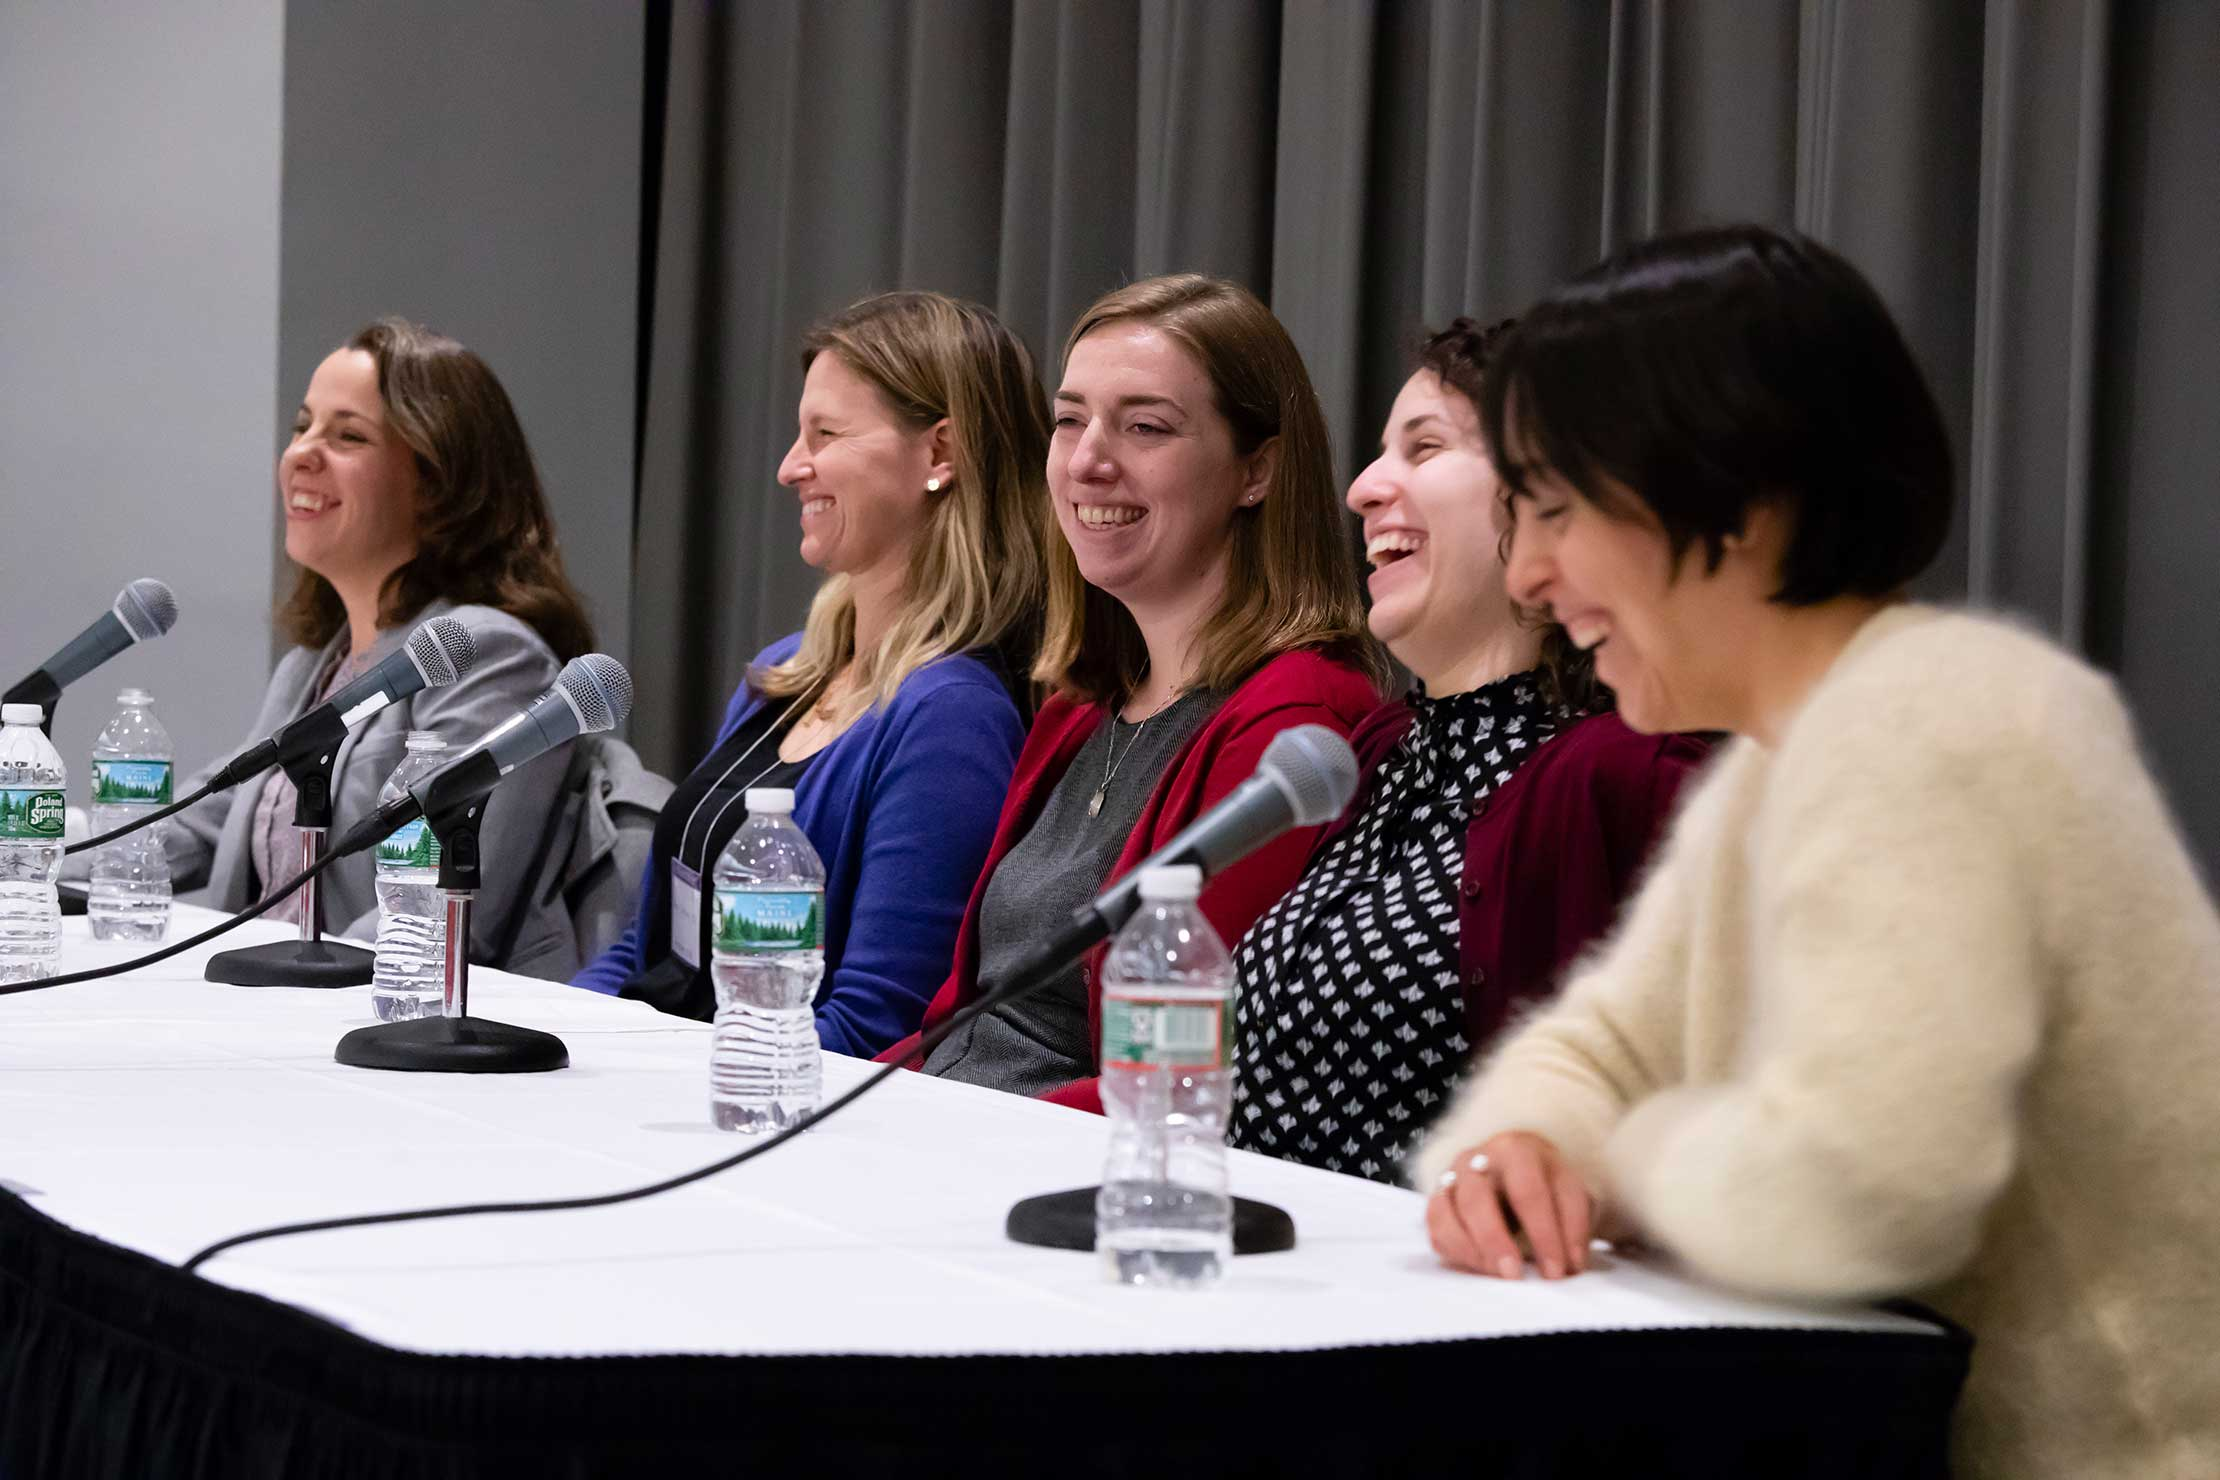 The Association for Women in Science hosted its Fourth Annual Alumnae Panel as part of the Homecoming festivities.